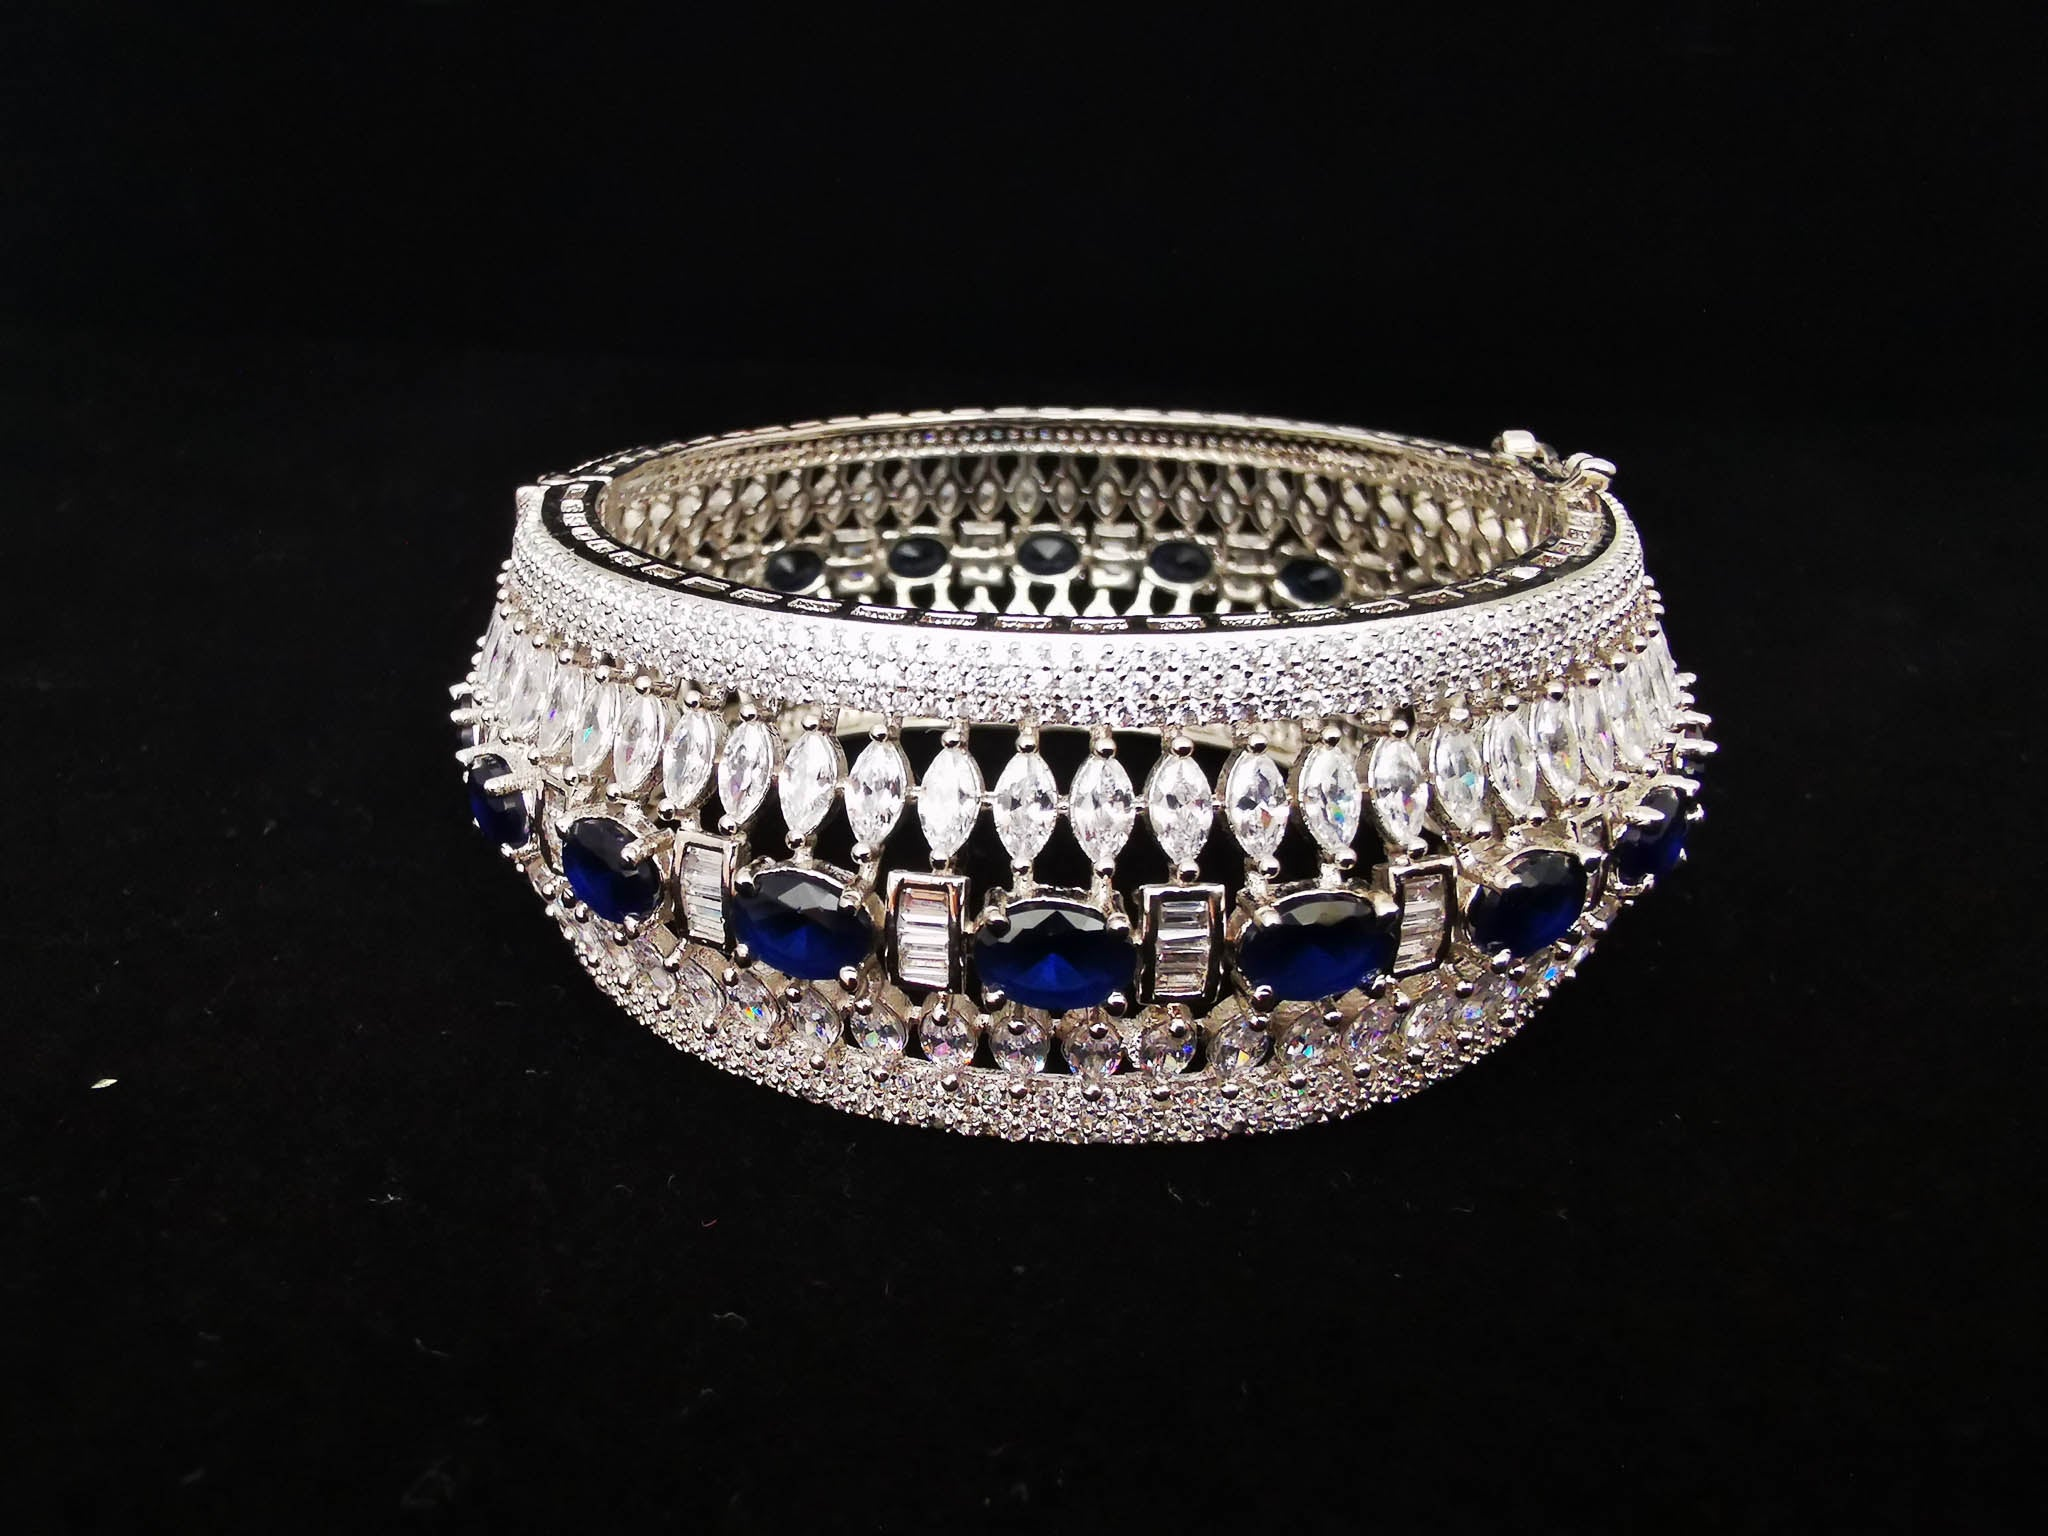 Sapphire and Silver Cubic Zirconia Bangle